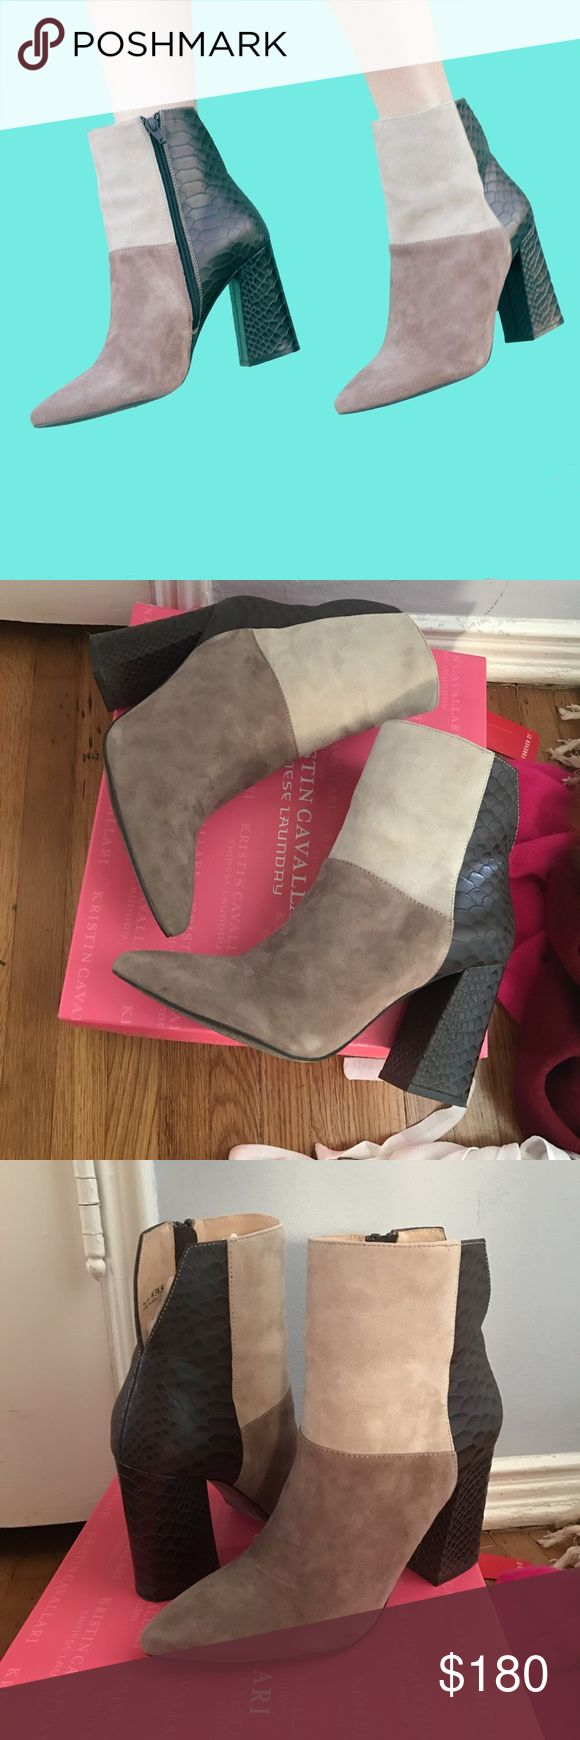 Chinese laundry Kristin cavalari boots size 8 These were worn once for a picture that's it. Comes with box. Orig $225 Chinese Laundry Shoes